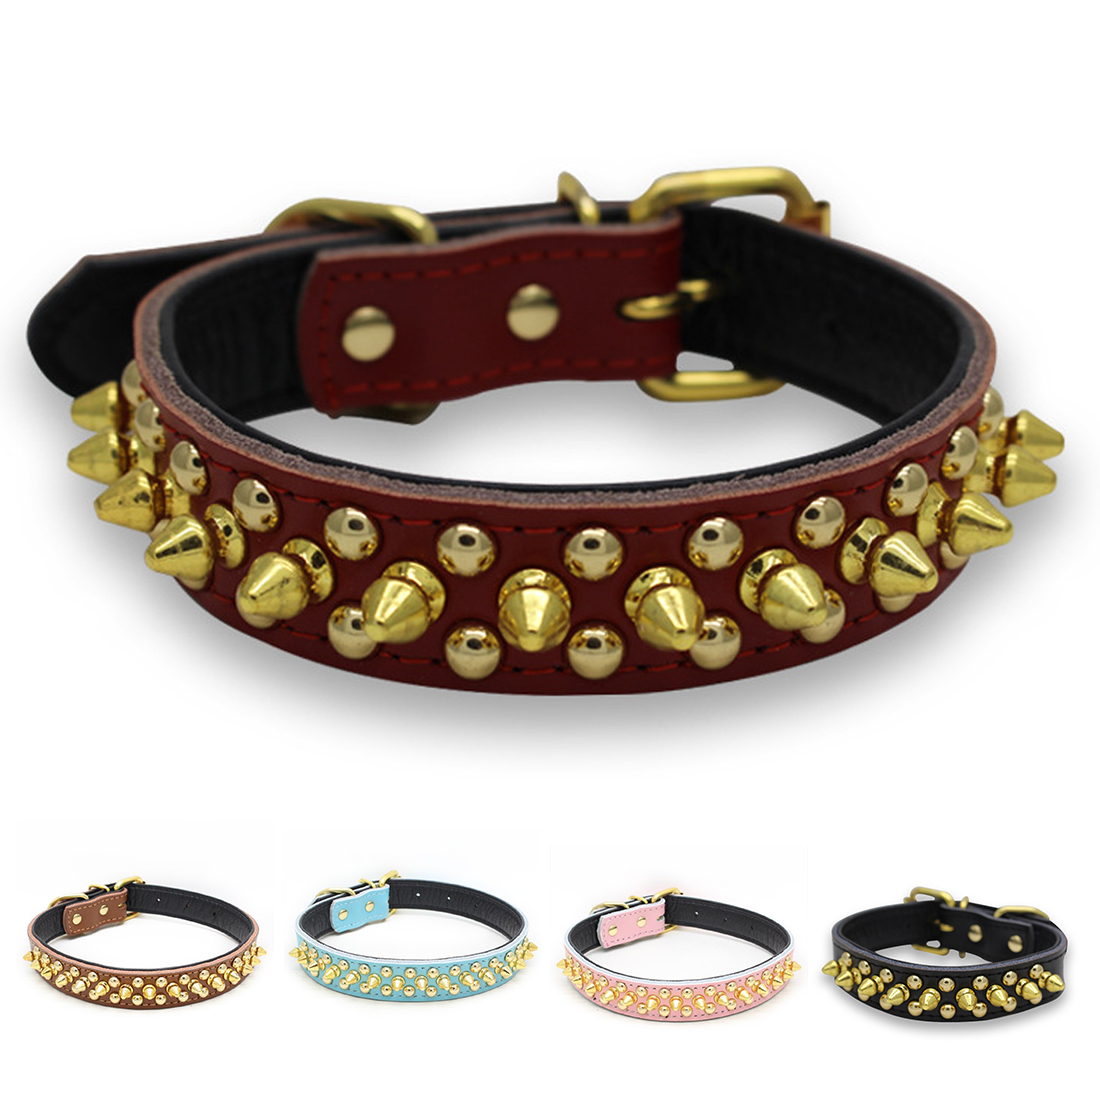 Best Sale Chain Dog Supplies Adjustable Harness Spiked Studded Genuine Leather Pet Dog Collar Rivet Dog Collar Round Nail Dog